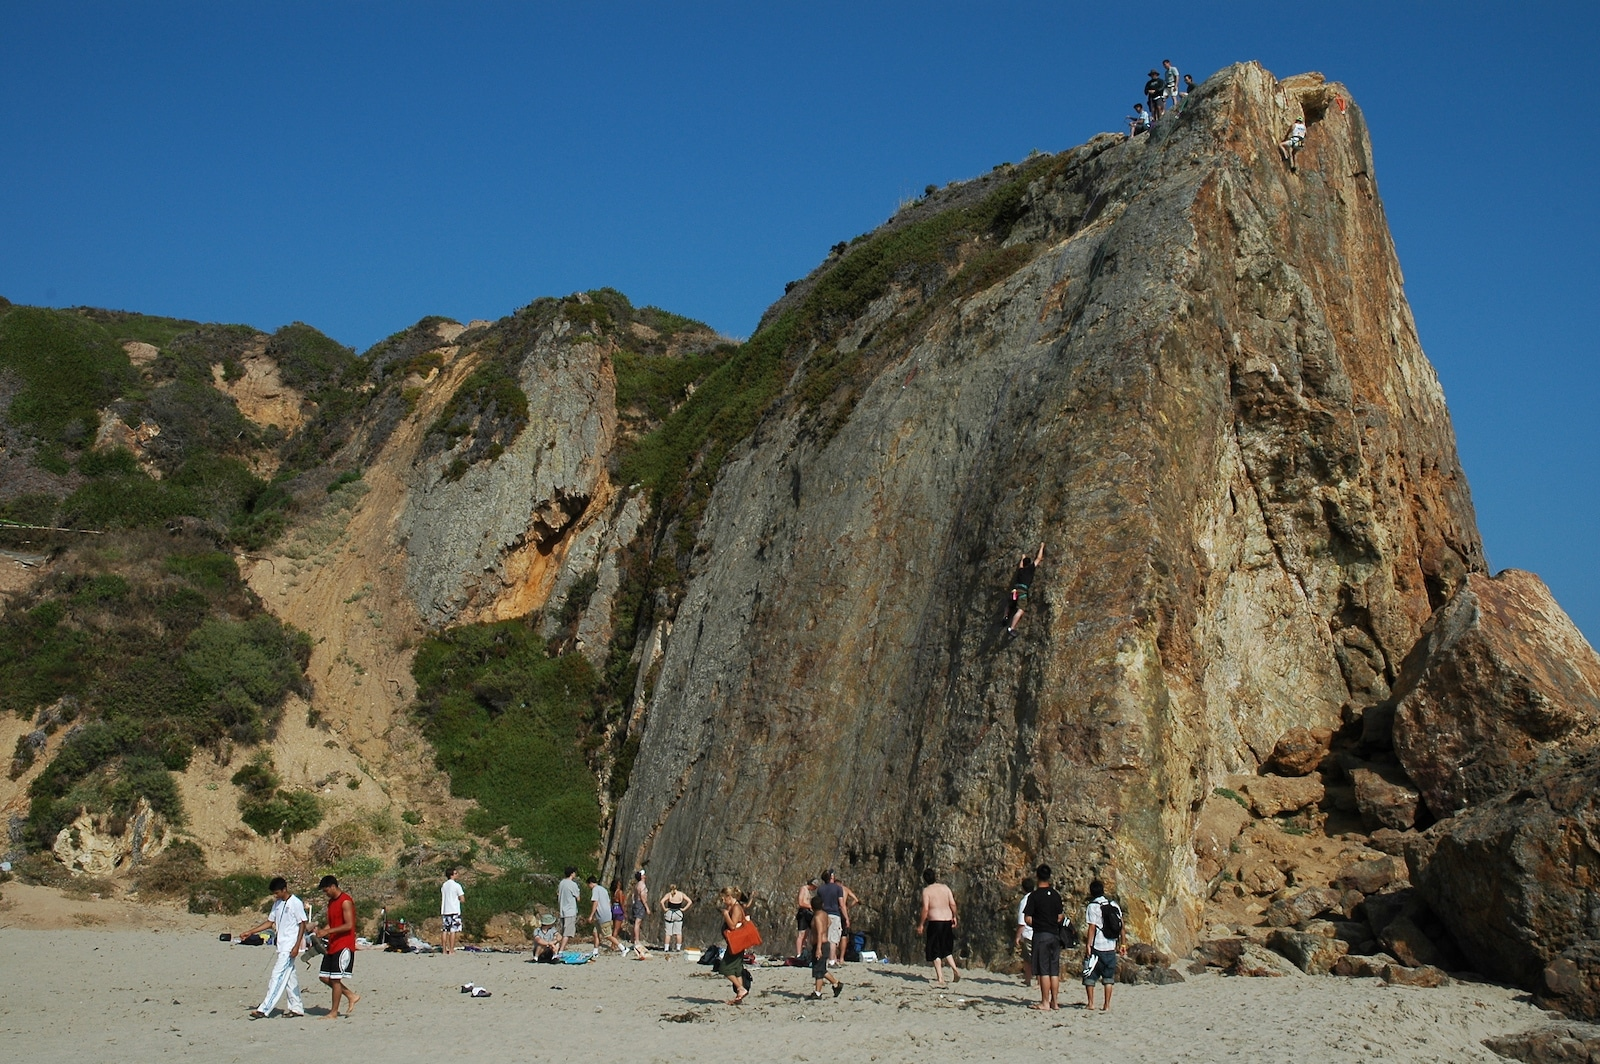 Rock climbers and observers at Point Dume, California